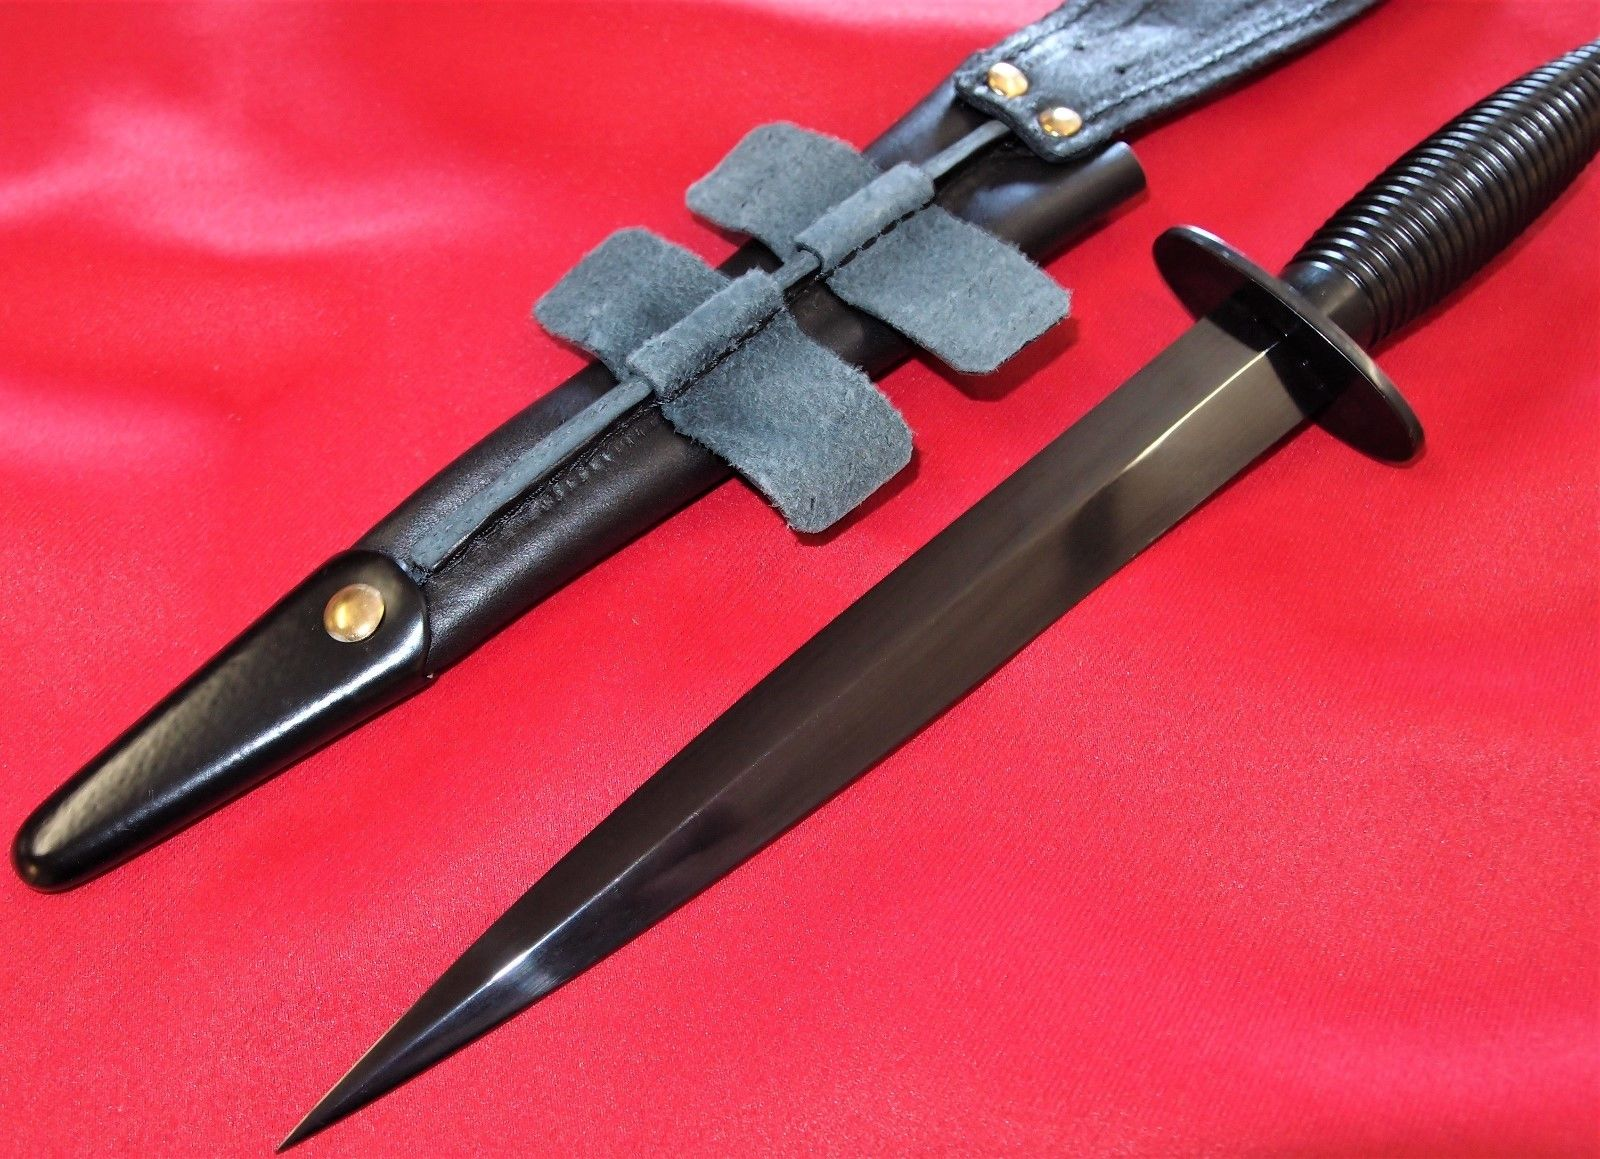 Military Surplus Auction >> ARMY ROYAL MARINES SURPLUS FAIRBAIRN & SYKES COMMANDO KNIFE SWORD S.A.S.R. – JB Military Antiques